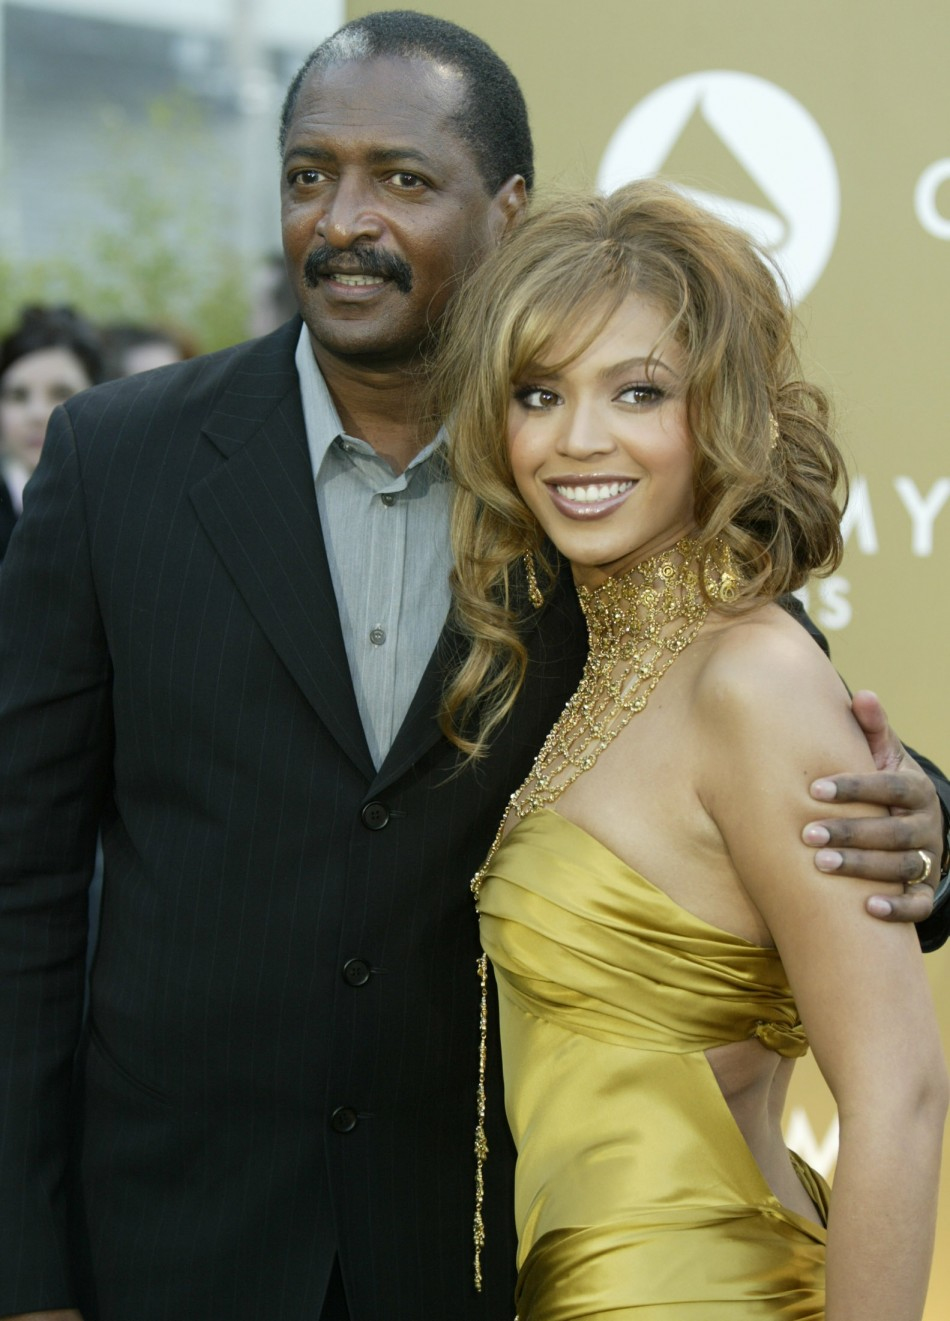 Beyonce Knowles and Mathew Knowles